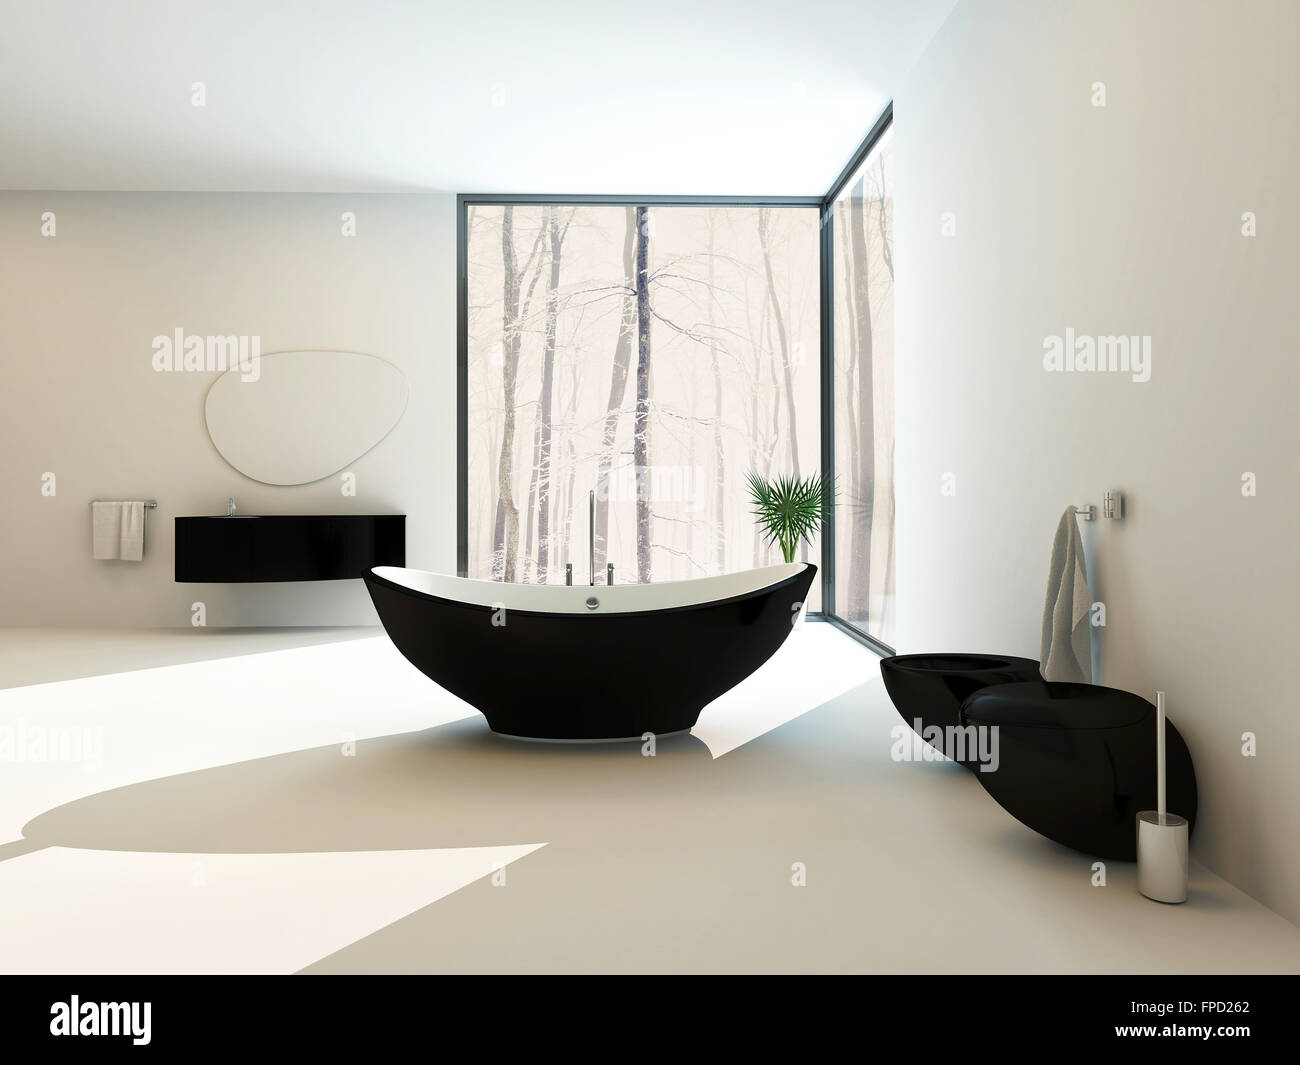 Wall hung bathroom suites - Contemporary Black Bathroom Suite With A Boat Shaped Freestanding Bathtub Wall Mounted Vanity